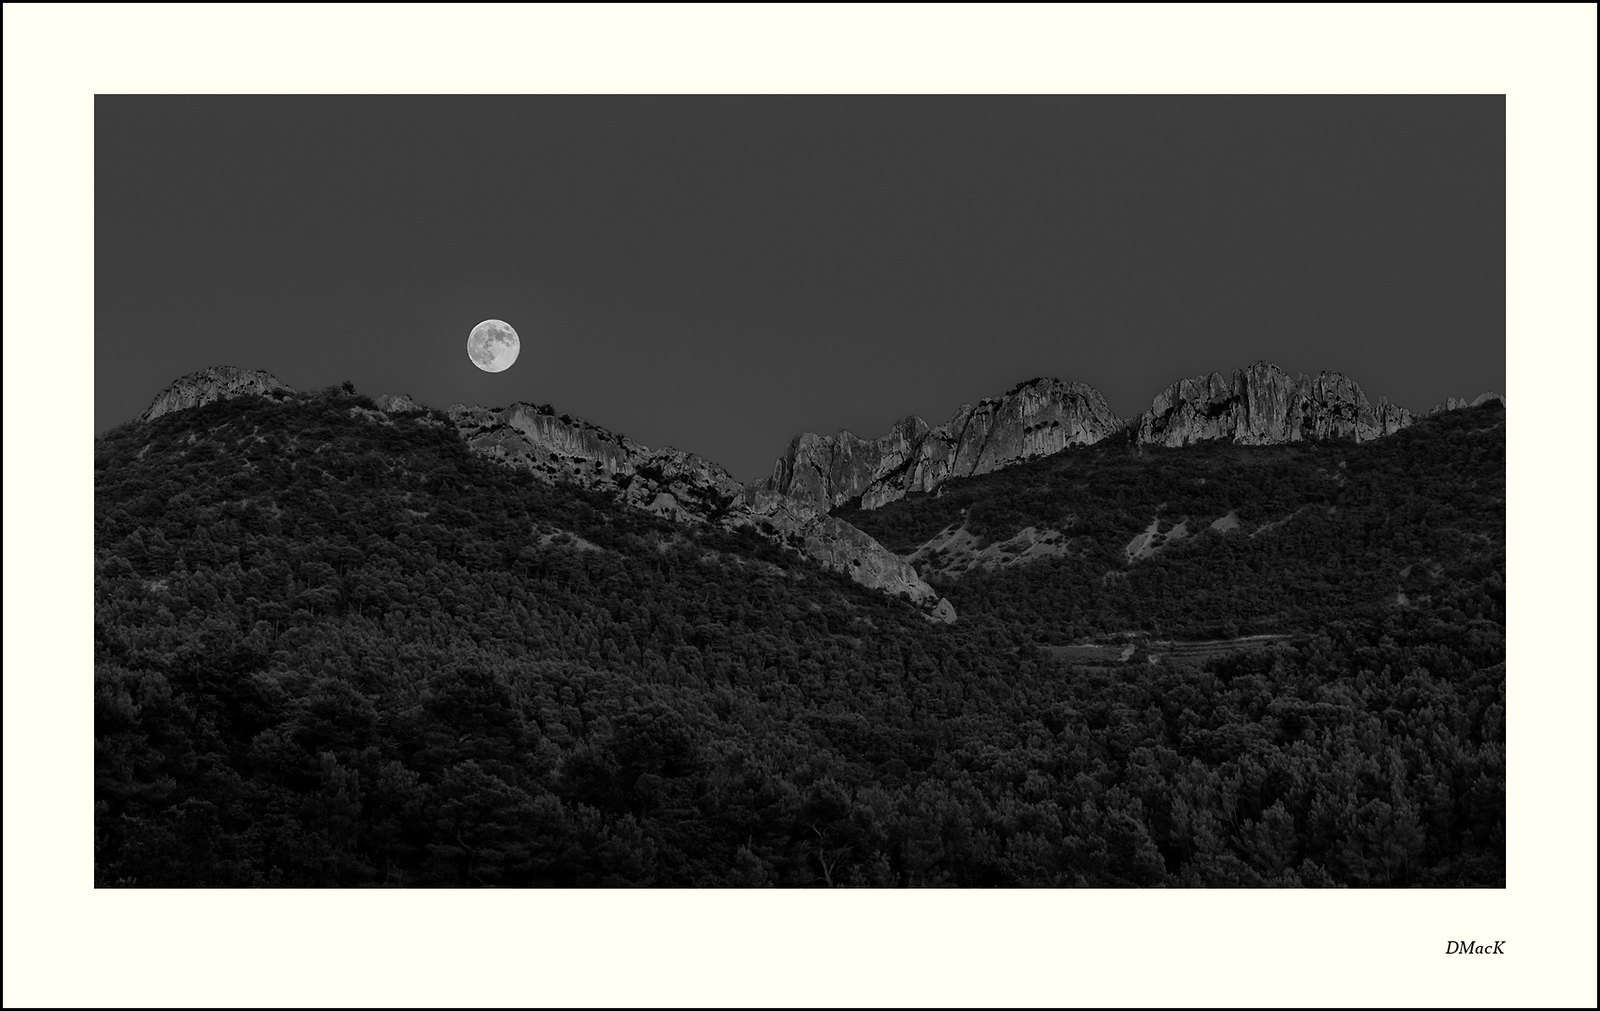 Moonrise over the Dentelles de Montmirail